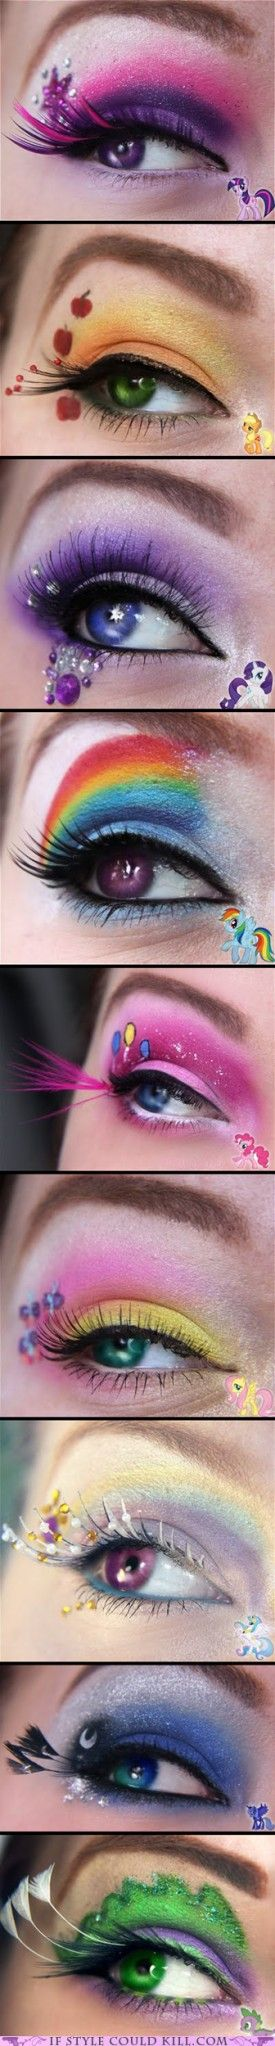 Pony eye makeup. If I had an extra hour every day and steadier hands I'd look like a different pony ALL THE TIME